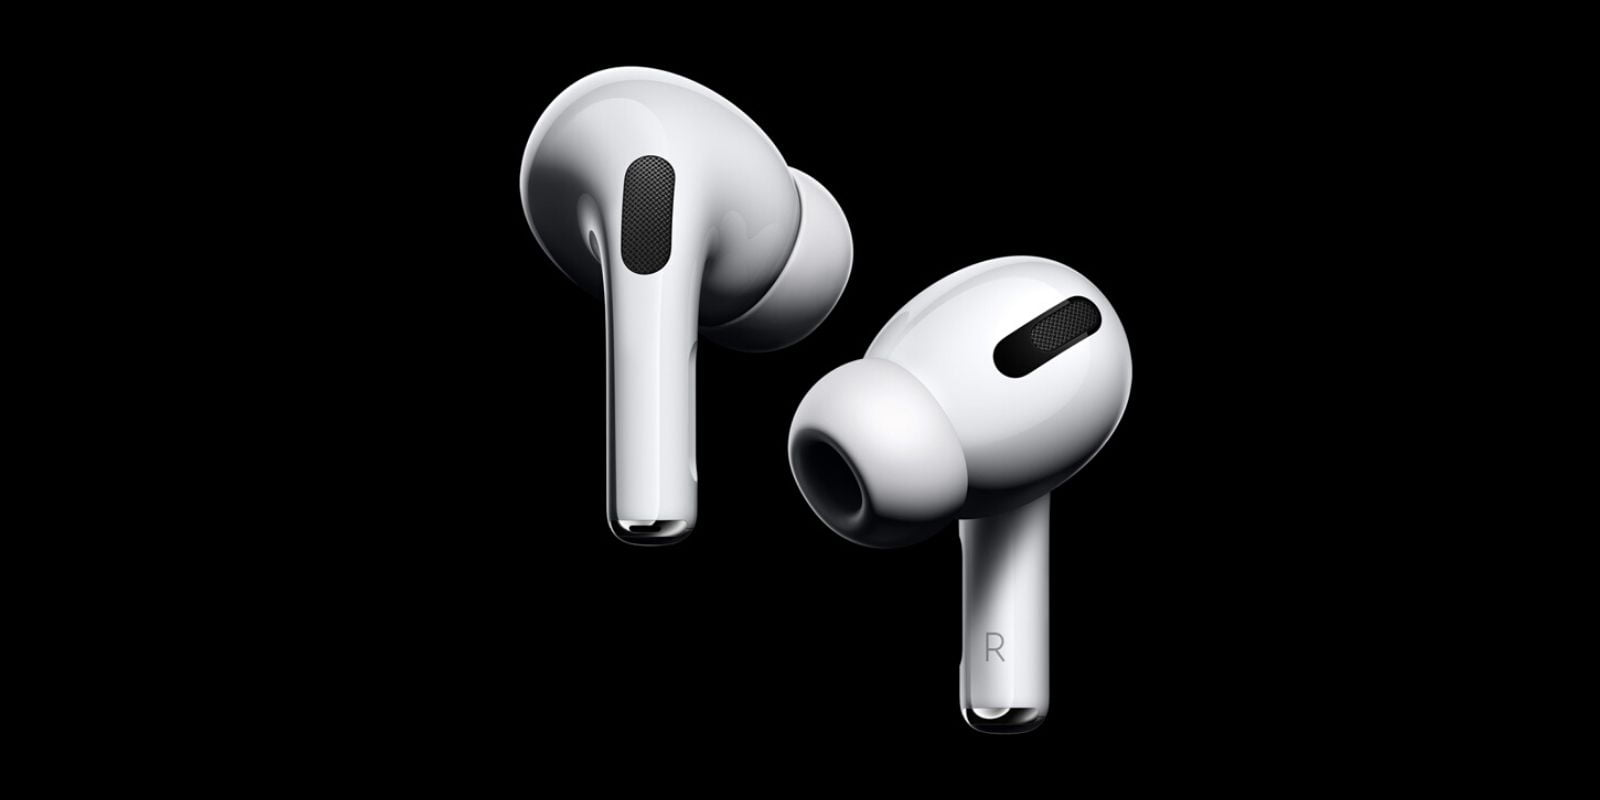 New AirPods Pro